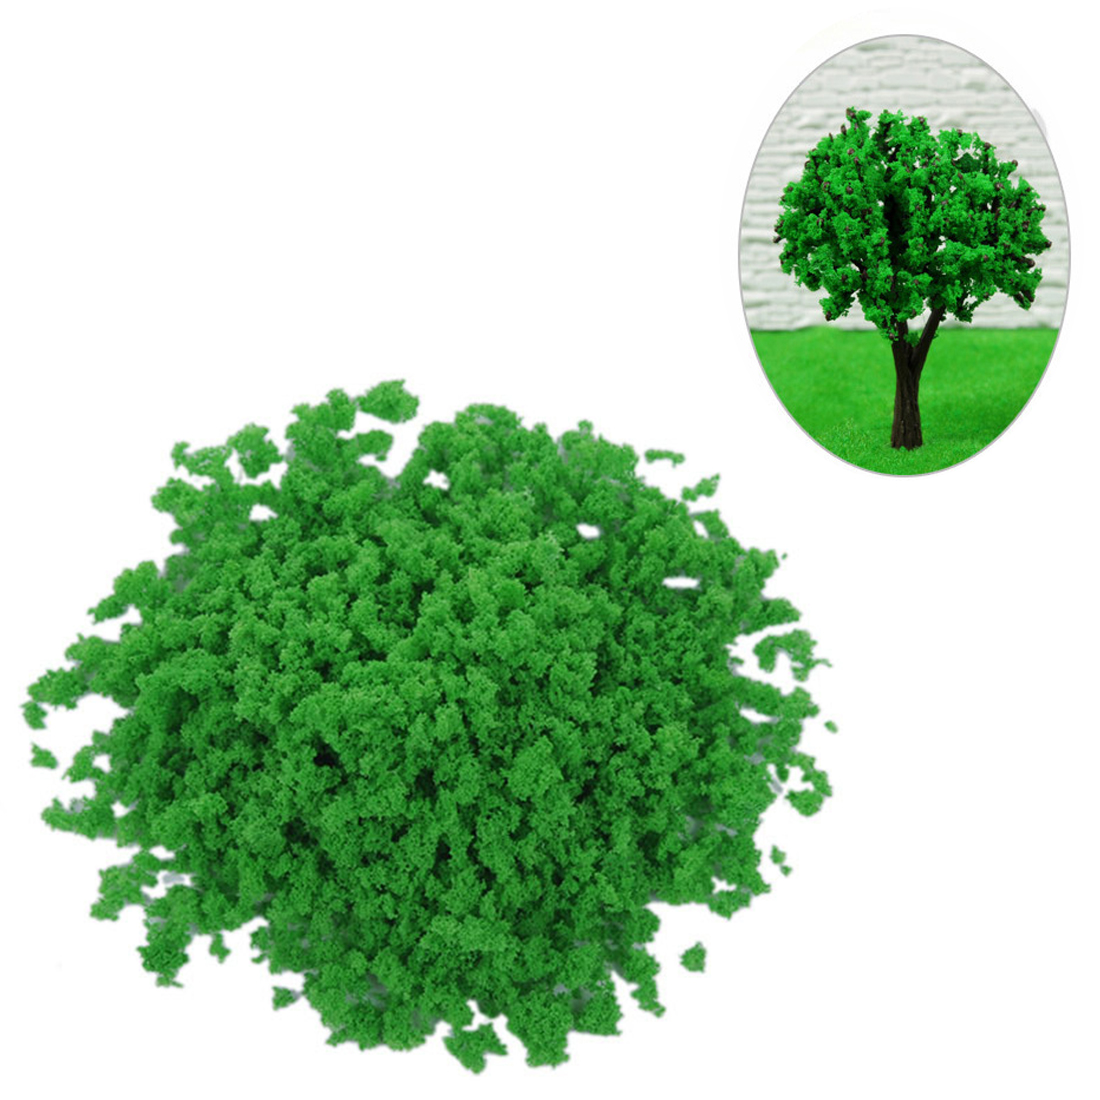 300G Sponge Tree Powder Granular Tree Powder DIY Sand Table Building Model Material - Purple/Red/Orange/Blue/Dark Green